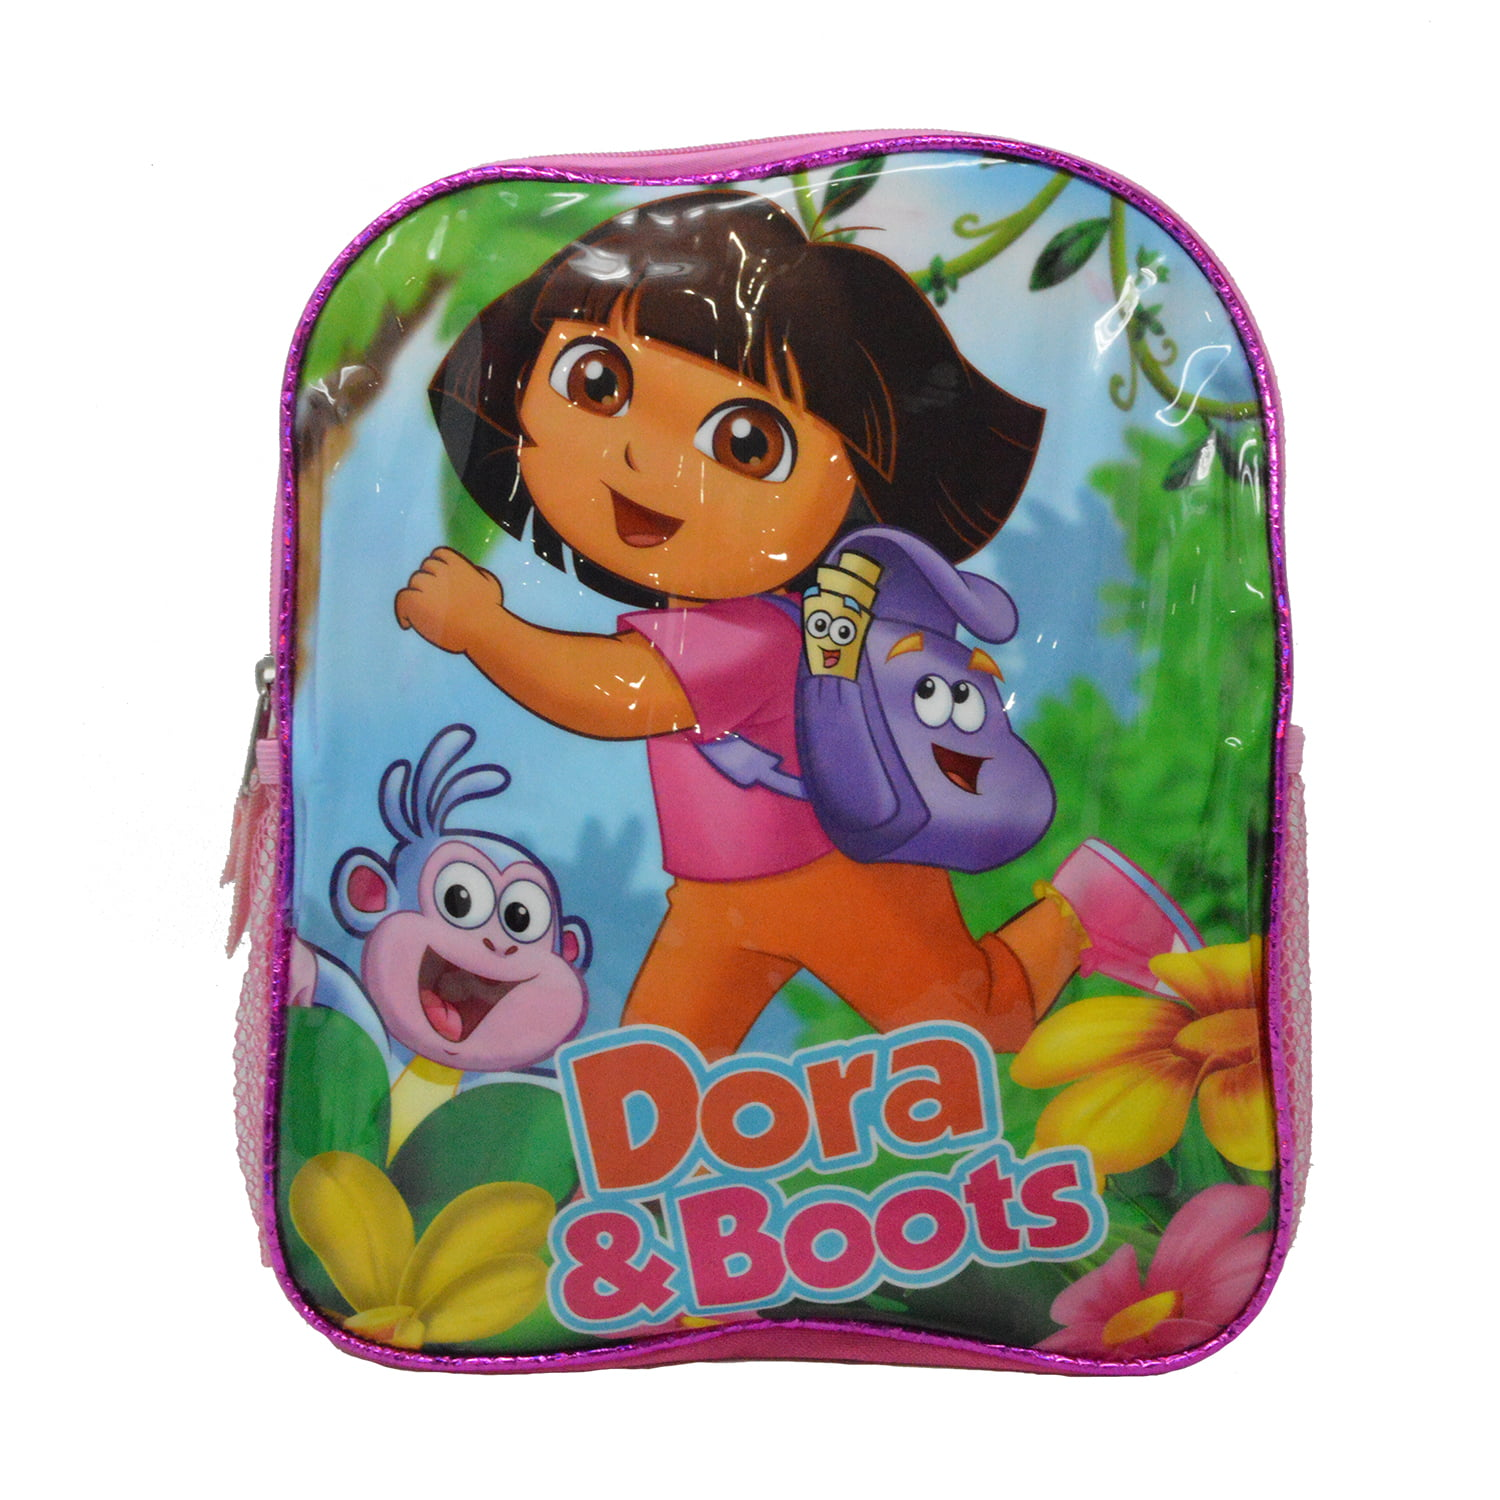 Dora The Explorer and Boots Back to School 12-inch Student Backpack Bag Pink by Accessory Innovations